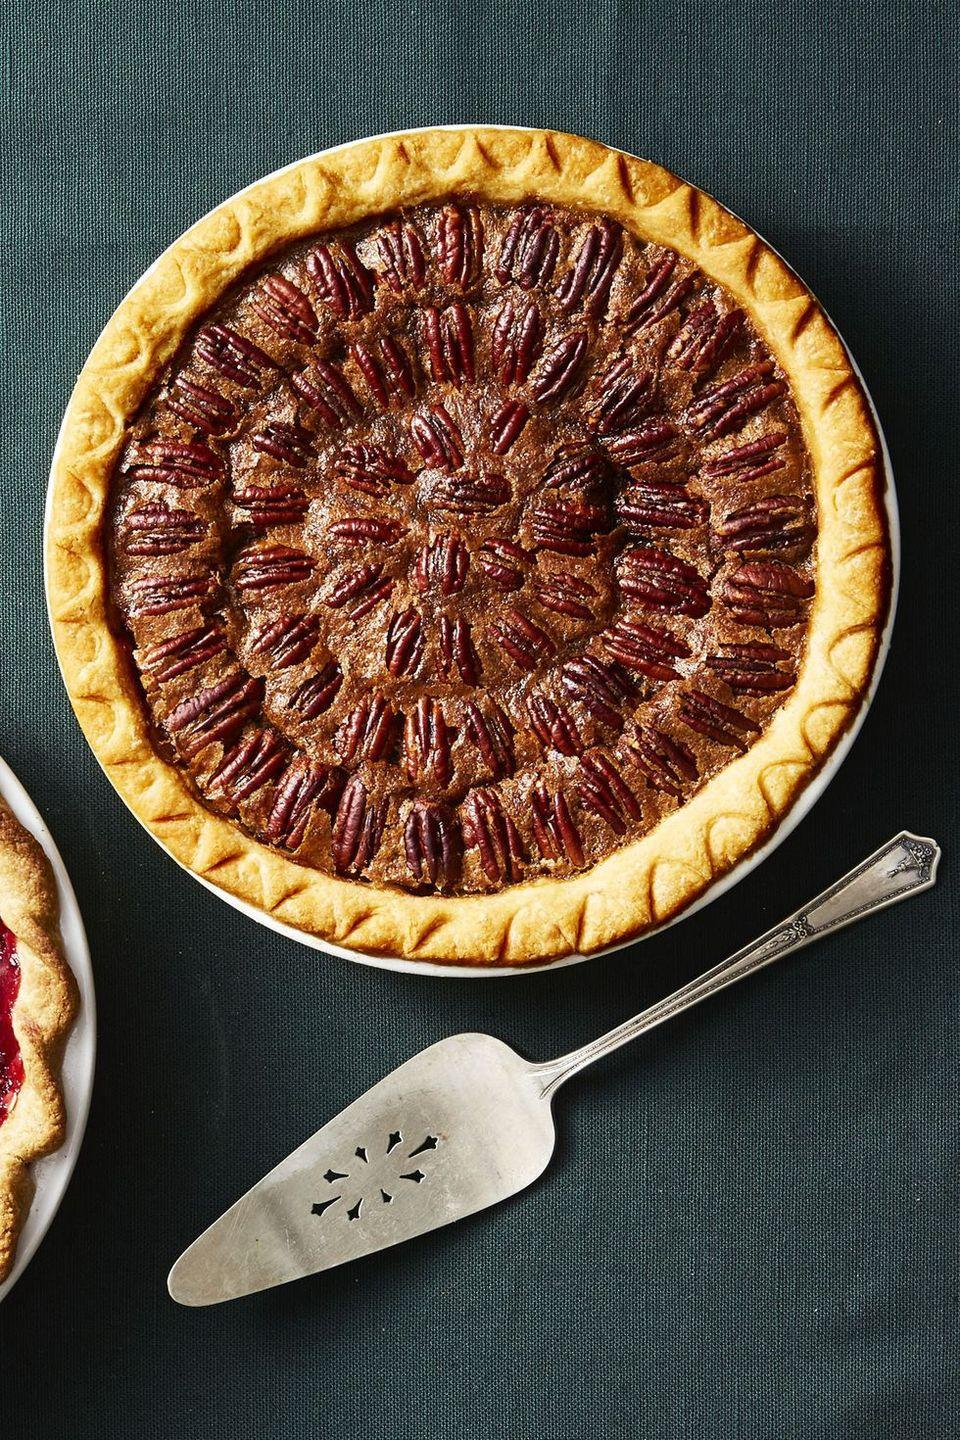 "<p>Our take on the classic is made sans corn syrup (if you care about that sort of thing!) — and is sweet, but not cloying. </p><p><em><a href=""https://www.goodhousekeeping.com/food-recipes/a10478/brown-sugar-pecan-pie-recipe-ghk1110/"" rel=""nofollow noopener"" target=""_blank"" data-ylk=""slk:Get the recipe for Brown Sugar Pecan Pie »"" class=""link rapid-noclick-resp"">Get the recipe for Brown Sugar Pecan Pie »</a></em></p><p><strong>RELATED: </strong><a href=""https://www.goodhousekeeping.com/food-recipes/dessert/g3611/best-pecan-pie-recipes/"" rel=""nofollow noopener"" target=""_blank"" data-ylk=""slk:19 Incredibly Delicious Pecan Pie Recipes to Try"" class=""link rapid-noclick-resp"">19 Incredibly Delicious Pecan Pie Recipes to Try</a></p>"